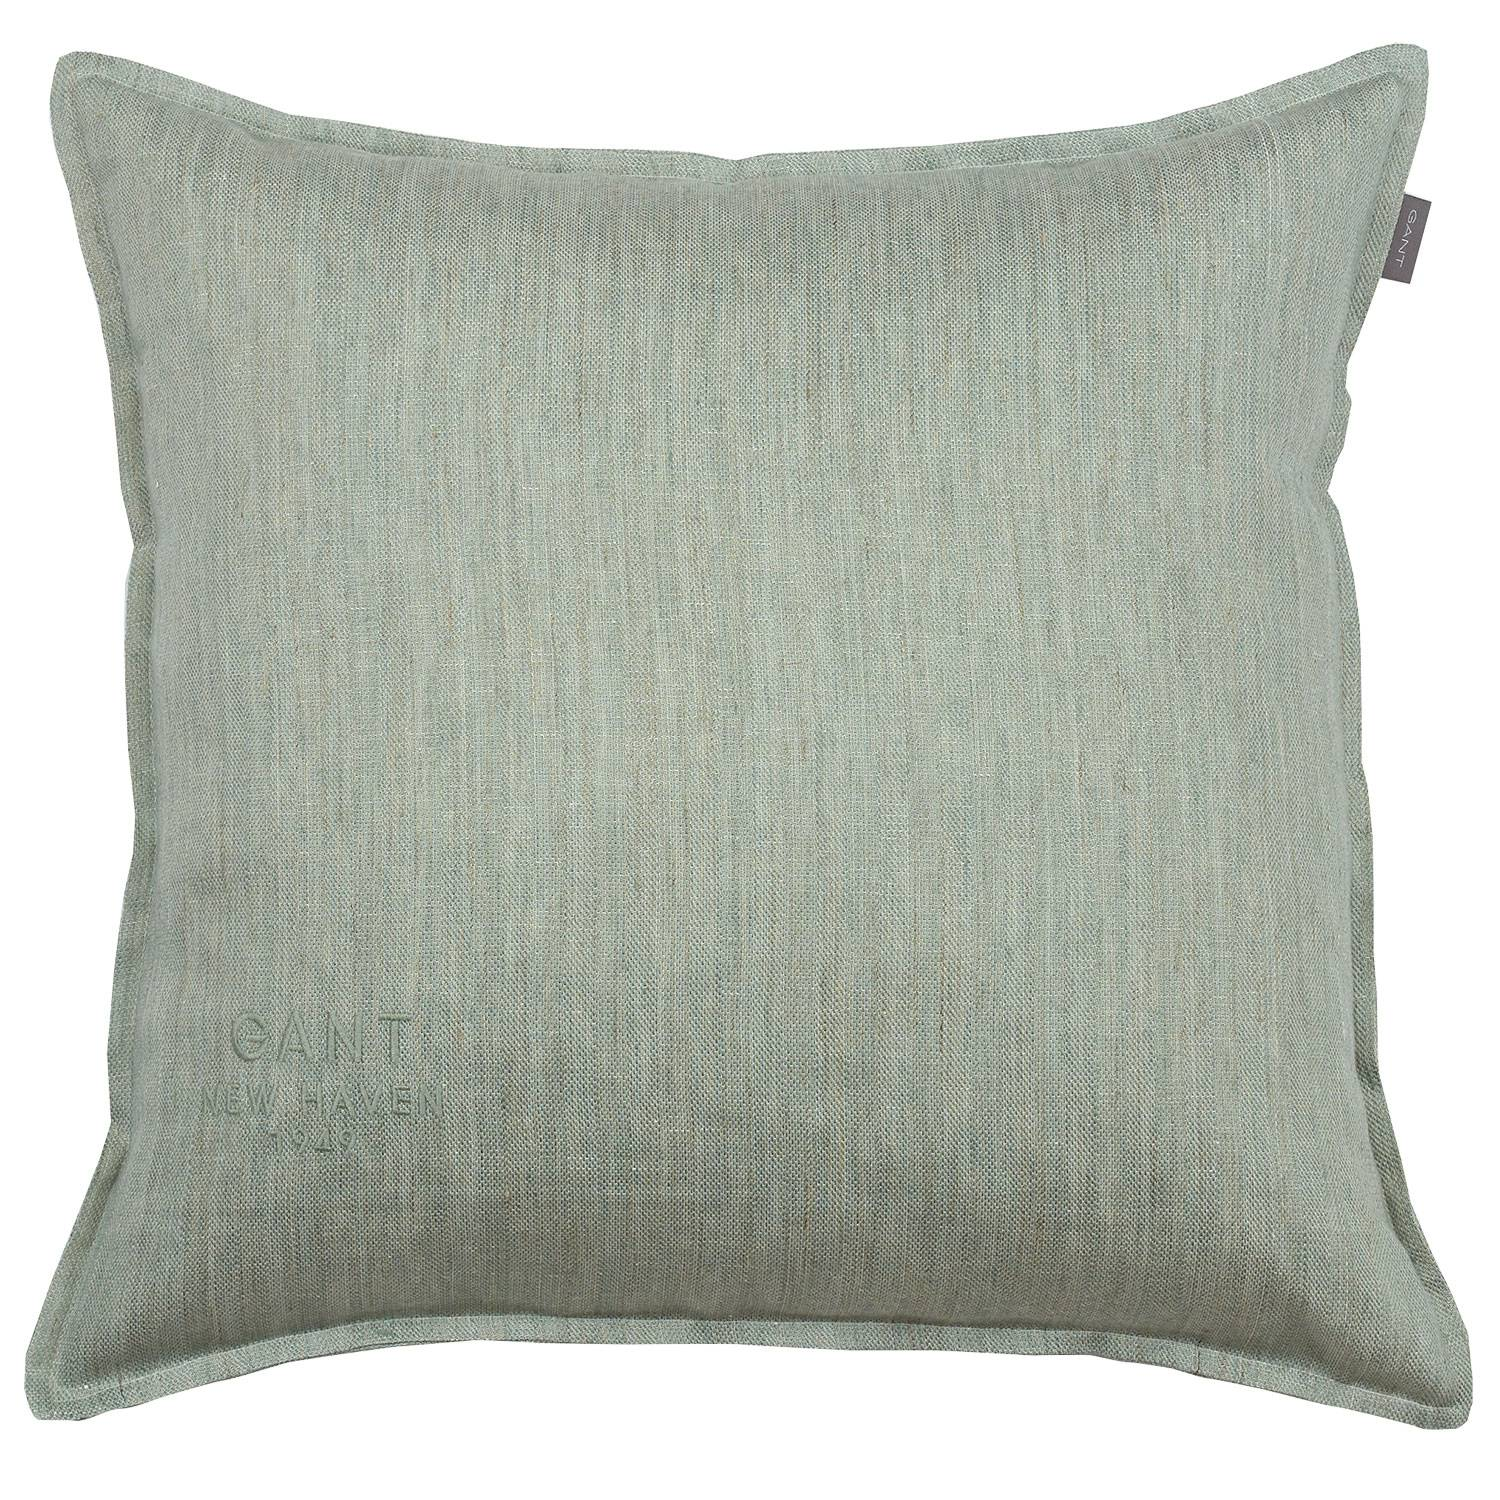 Gant Home Margot Linen Tyynynpäällinen 50x50cm, Breeze